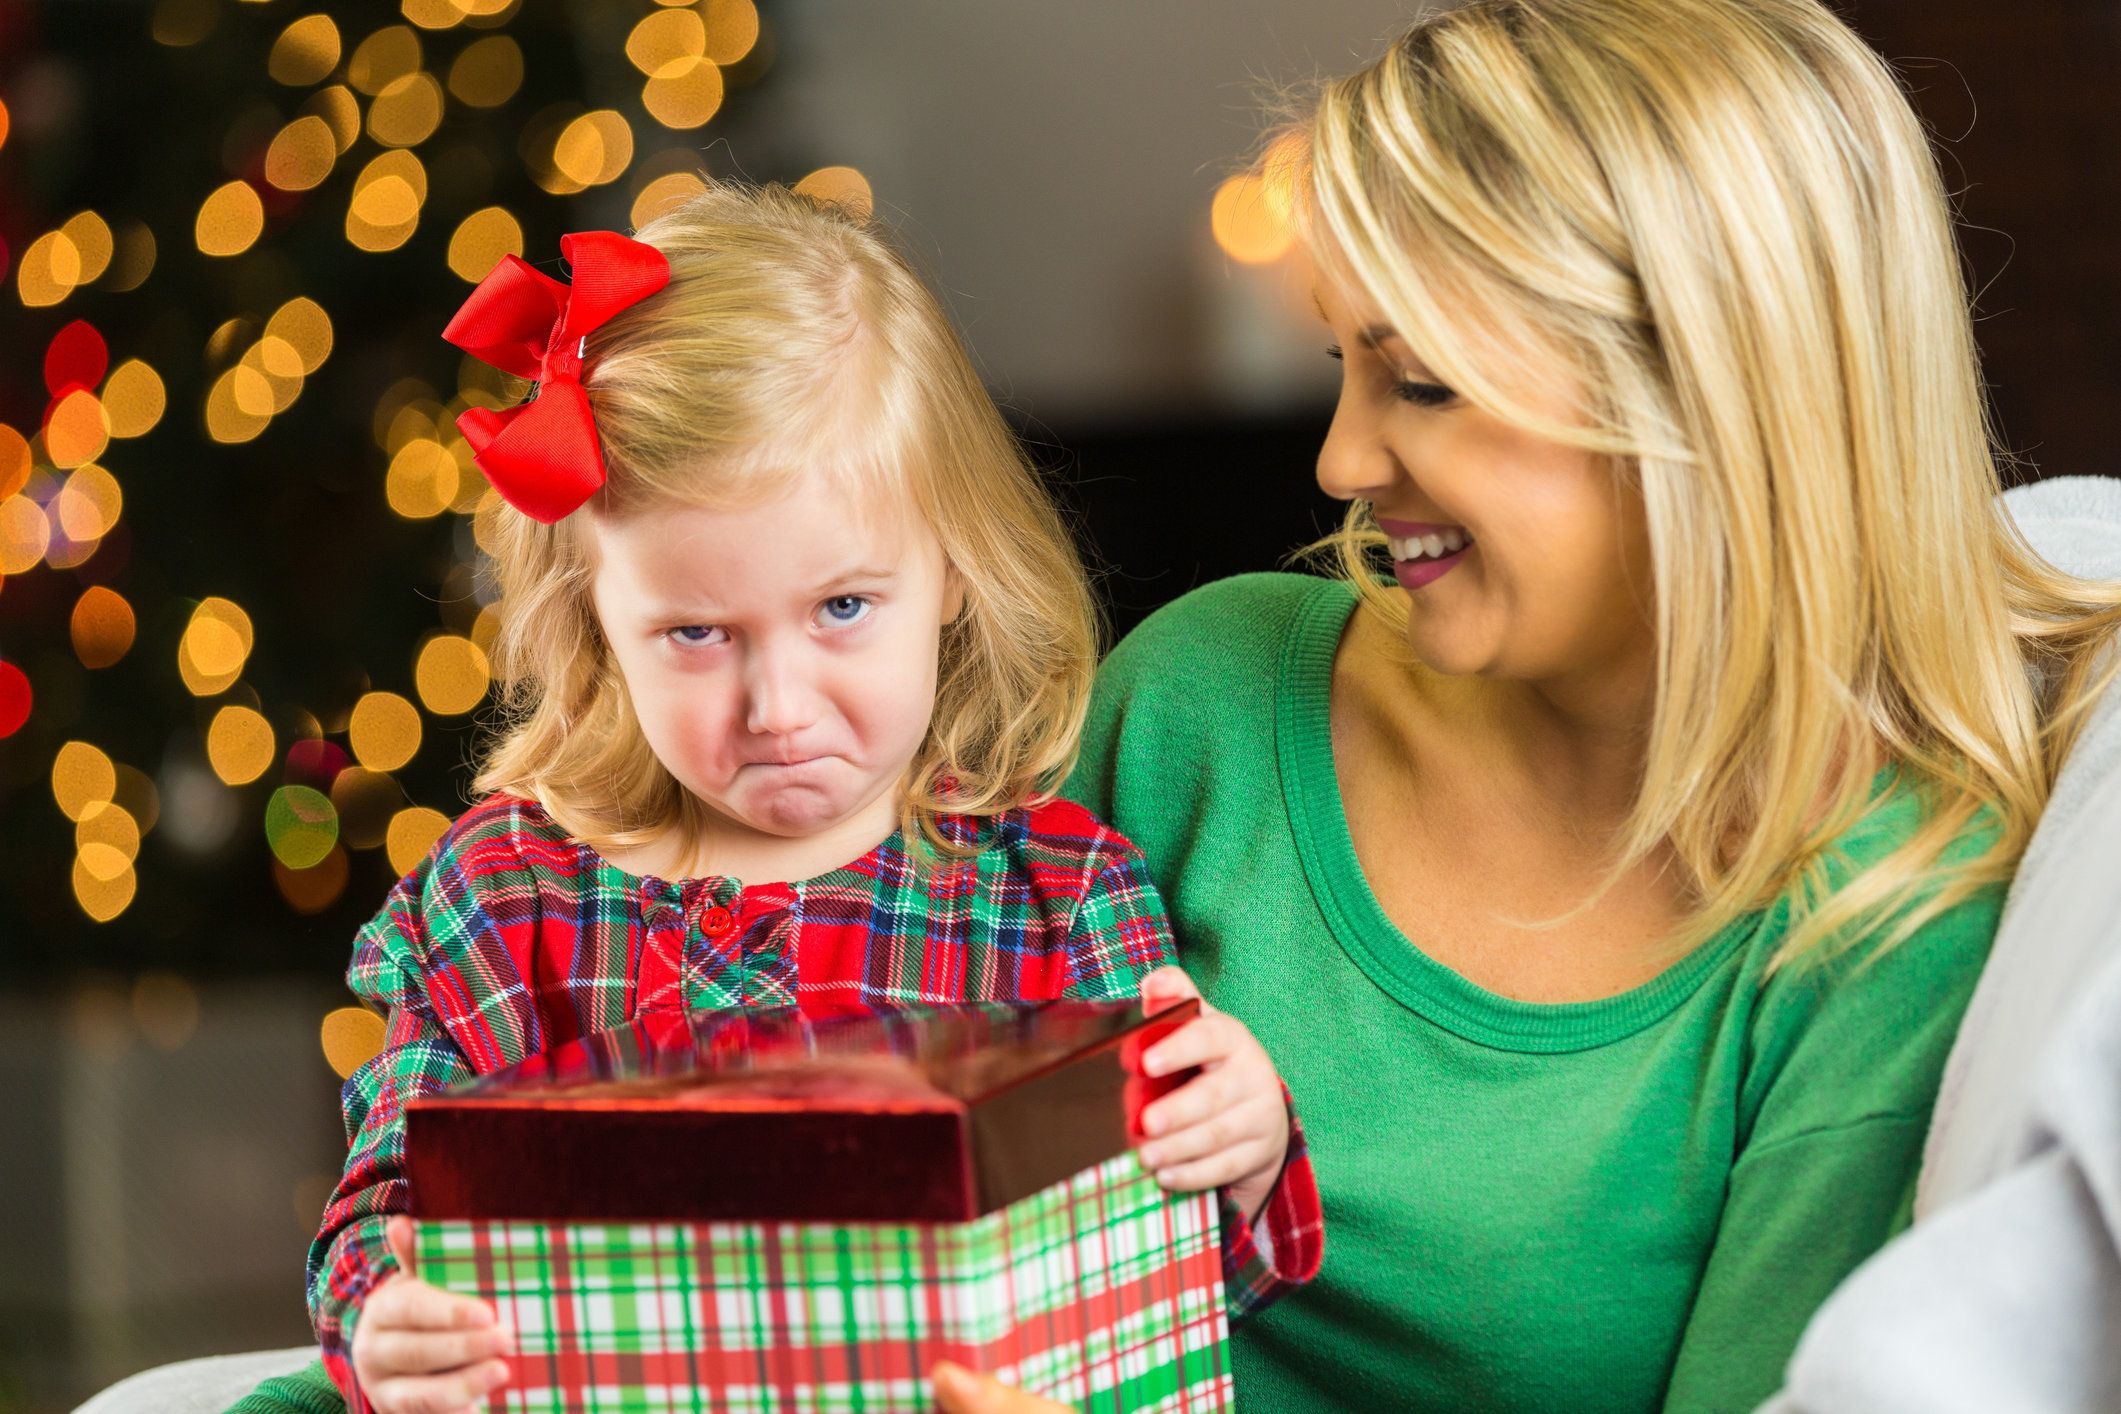 Disappointed little girl holding Christmas present while frowning with mom